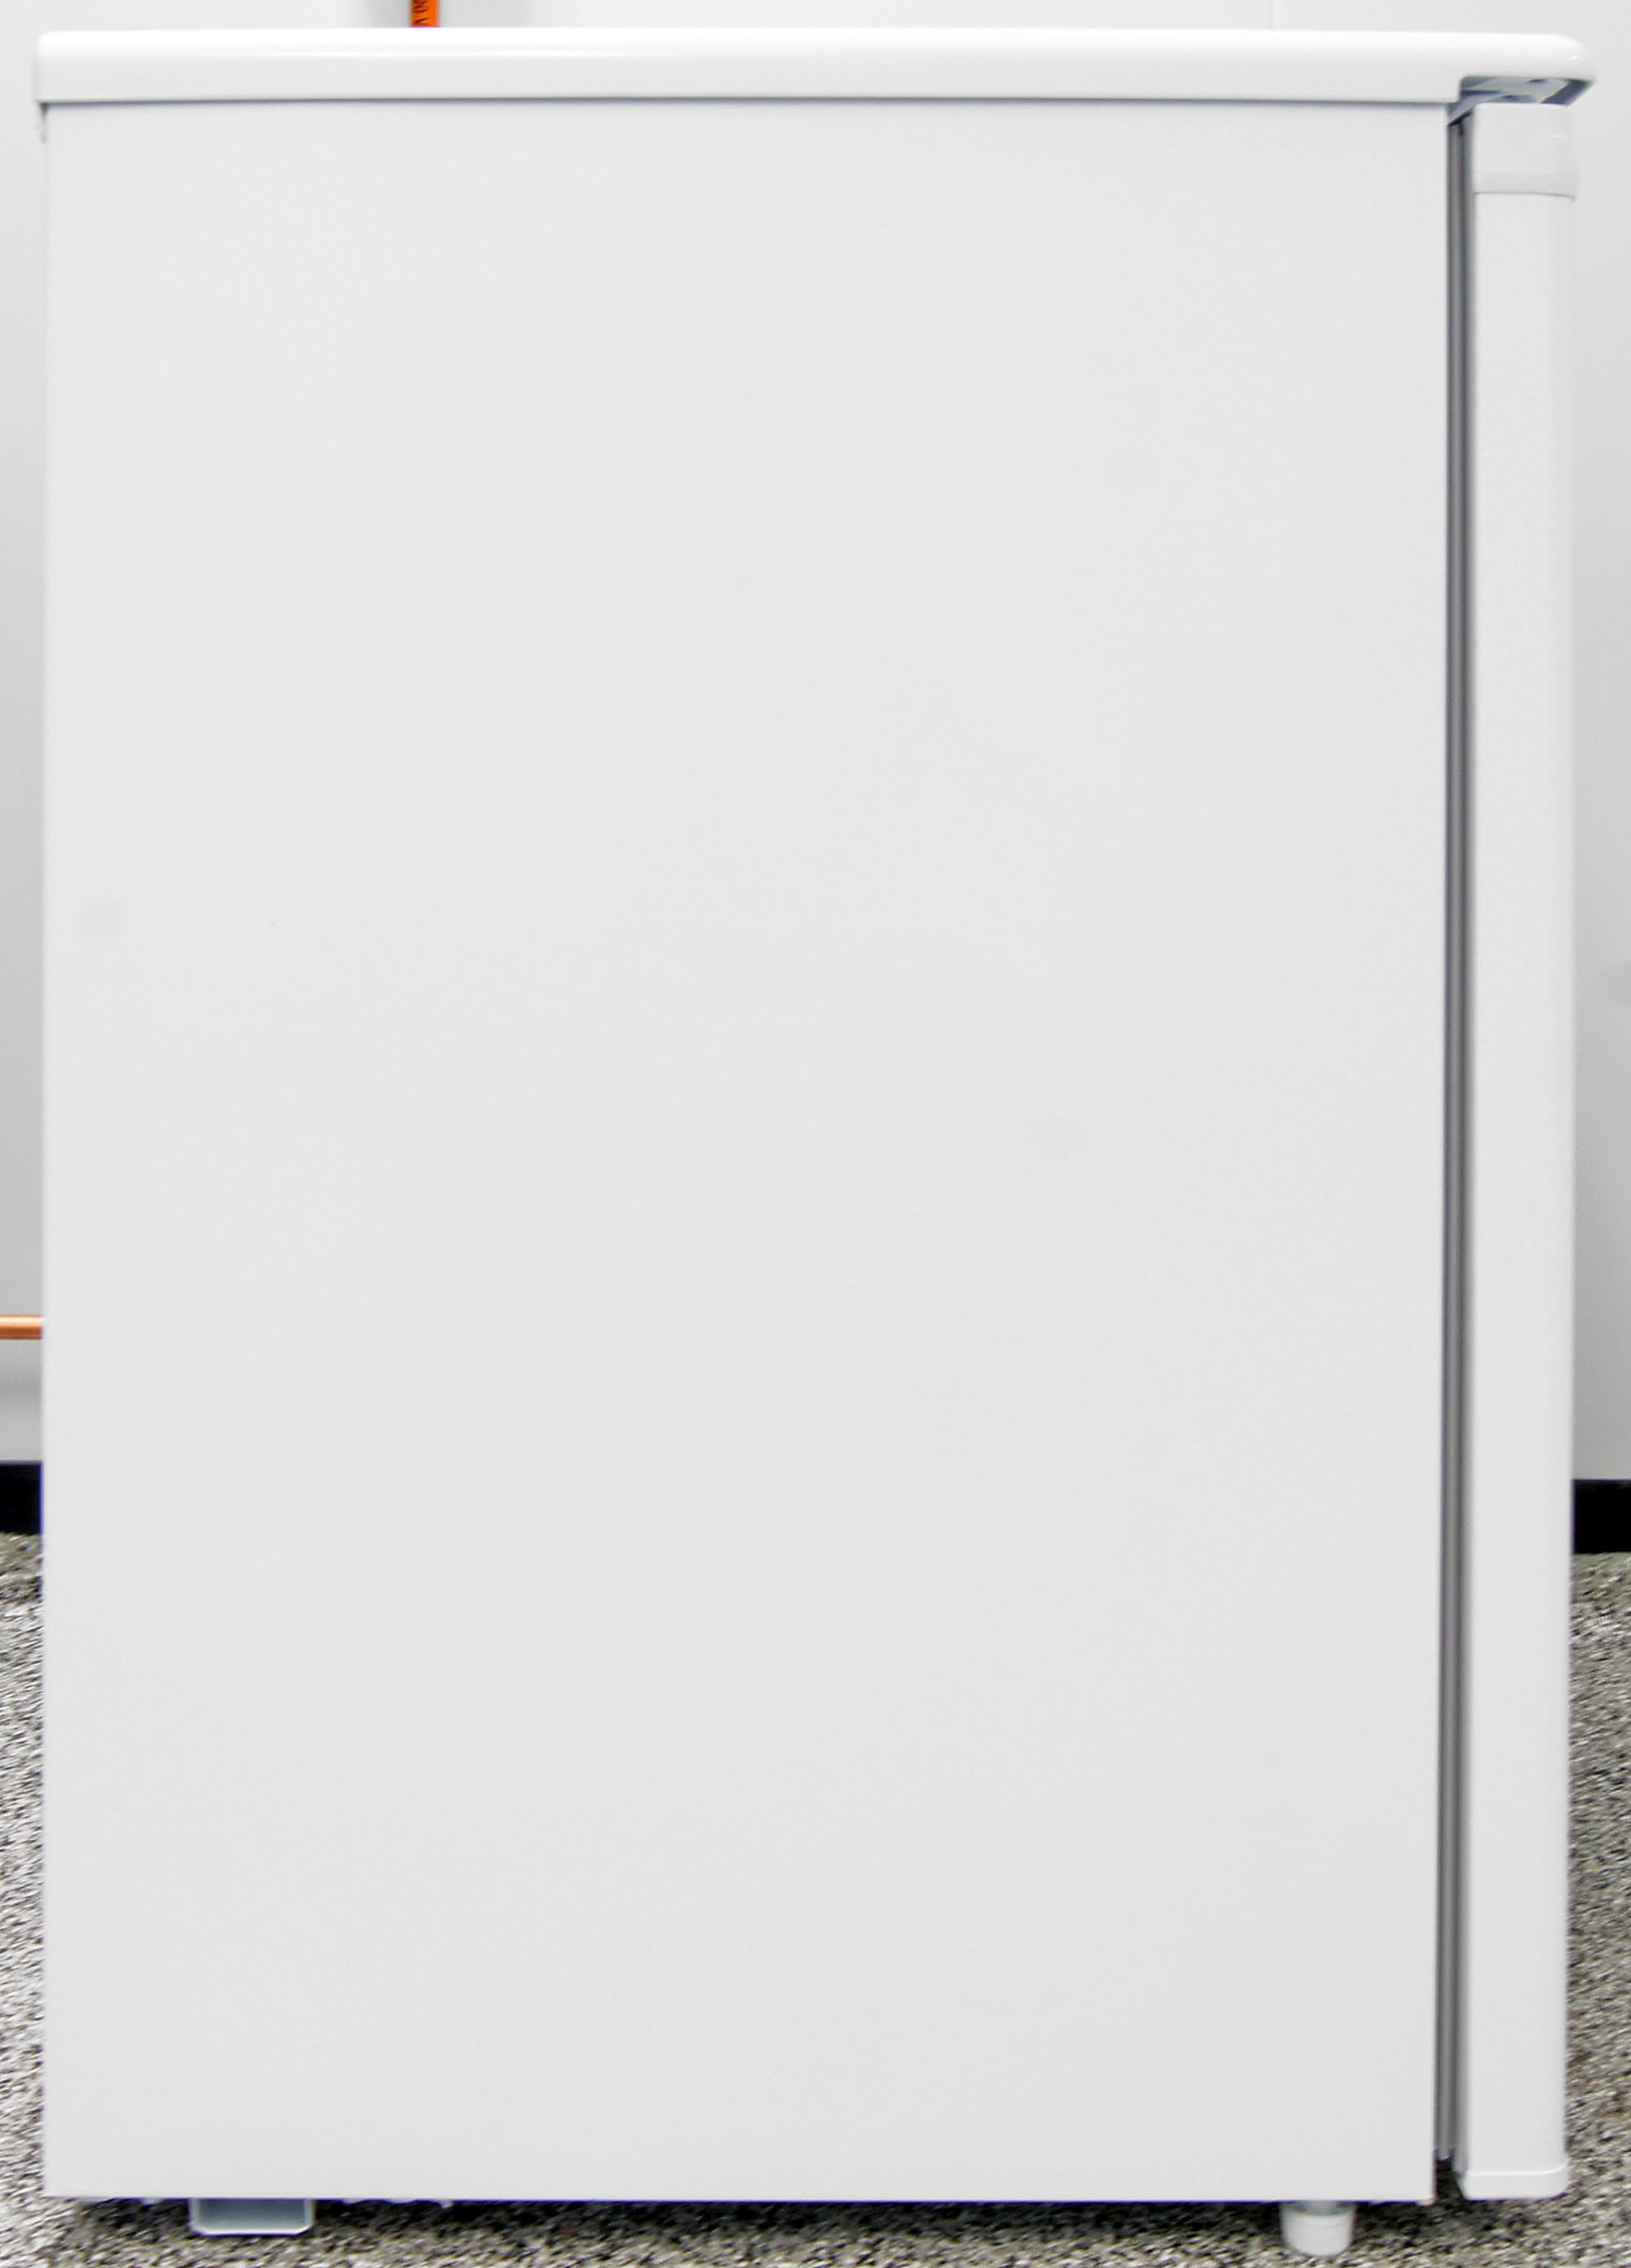 Compact refrigerator Ratings - consumerreports.org